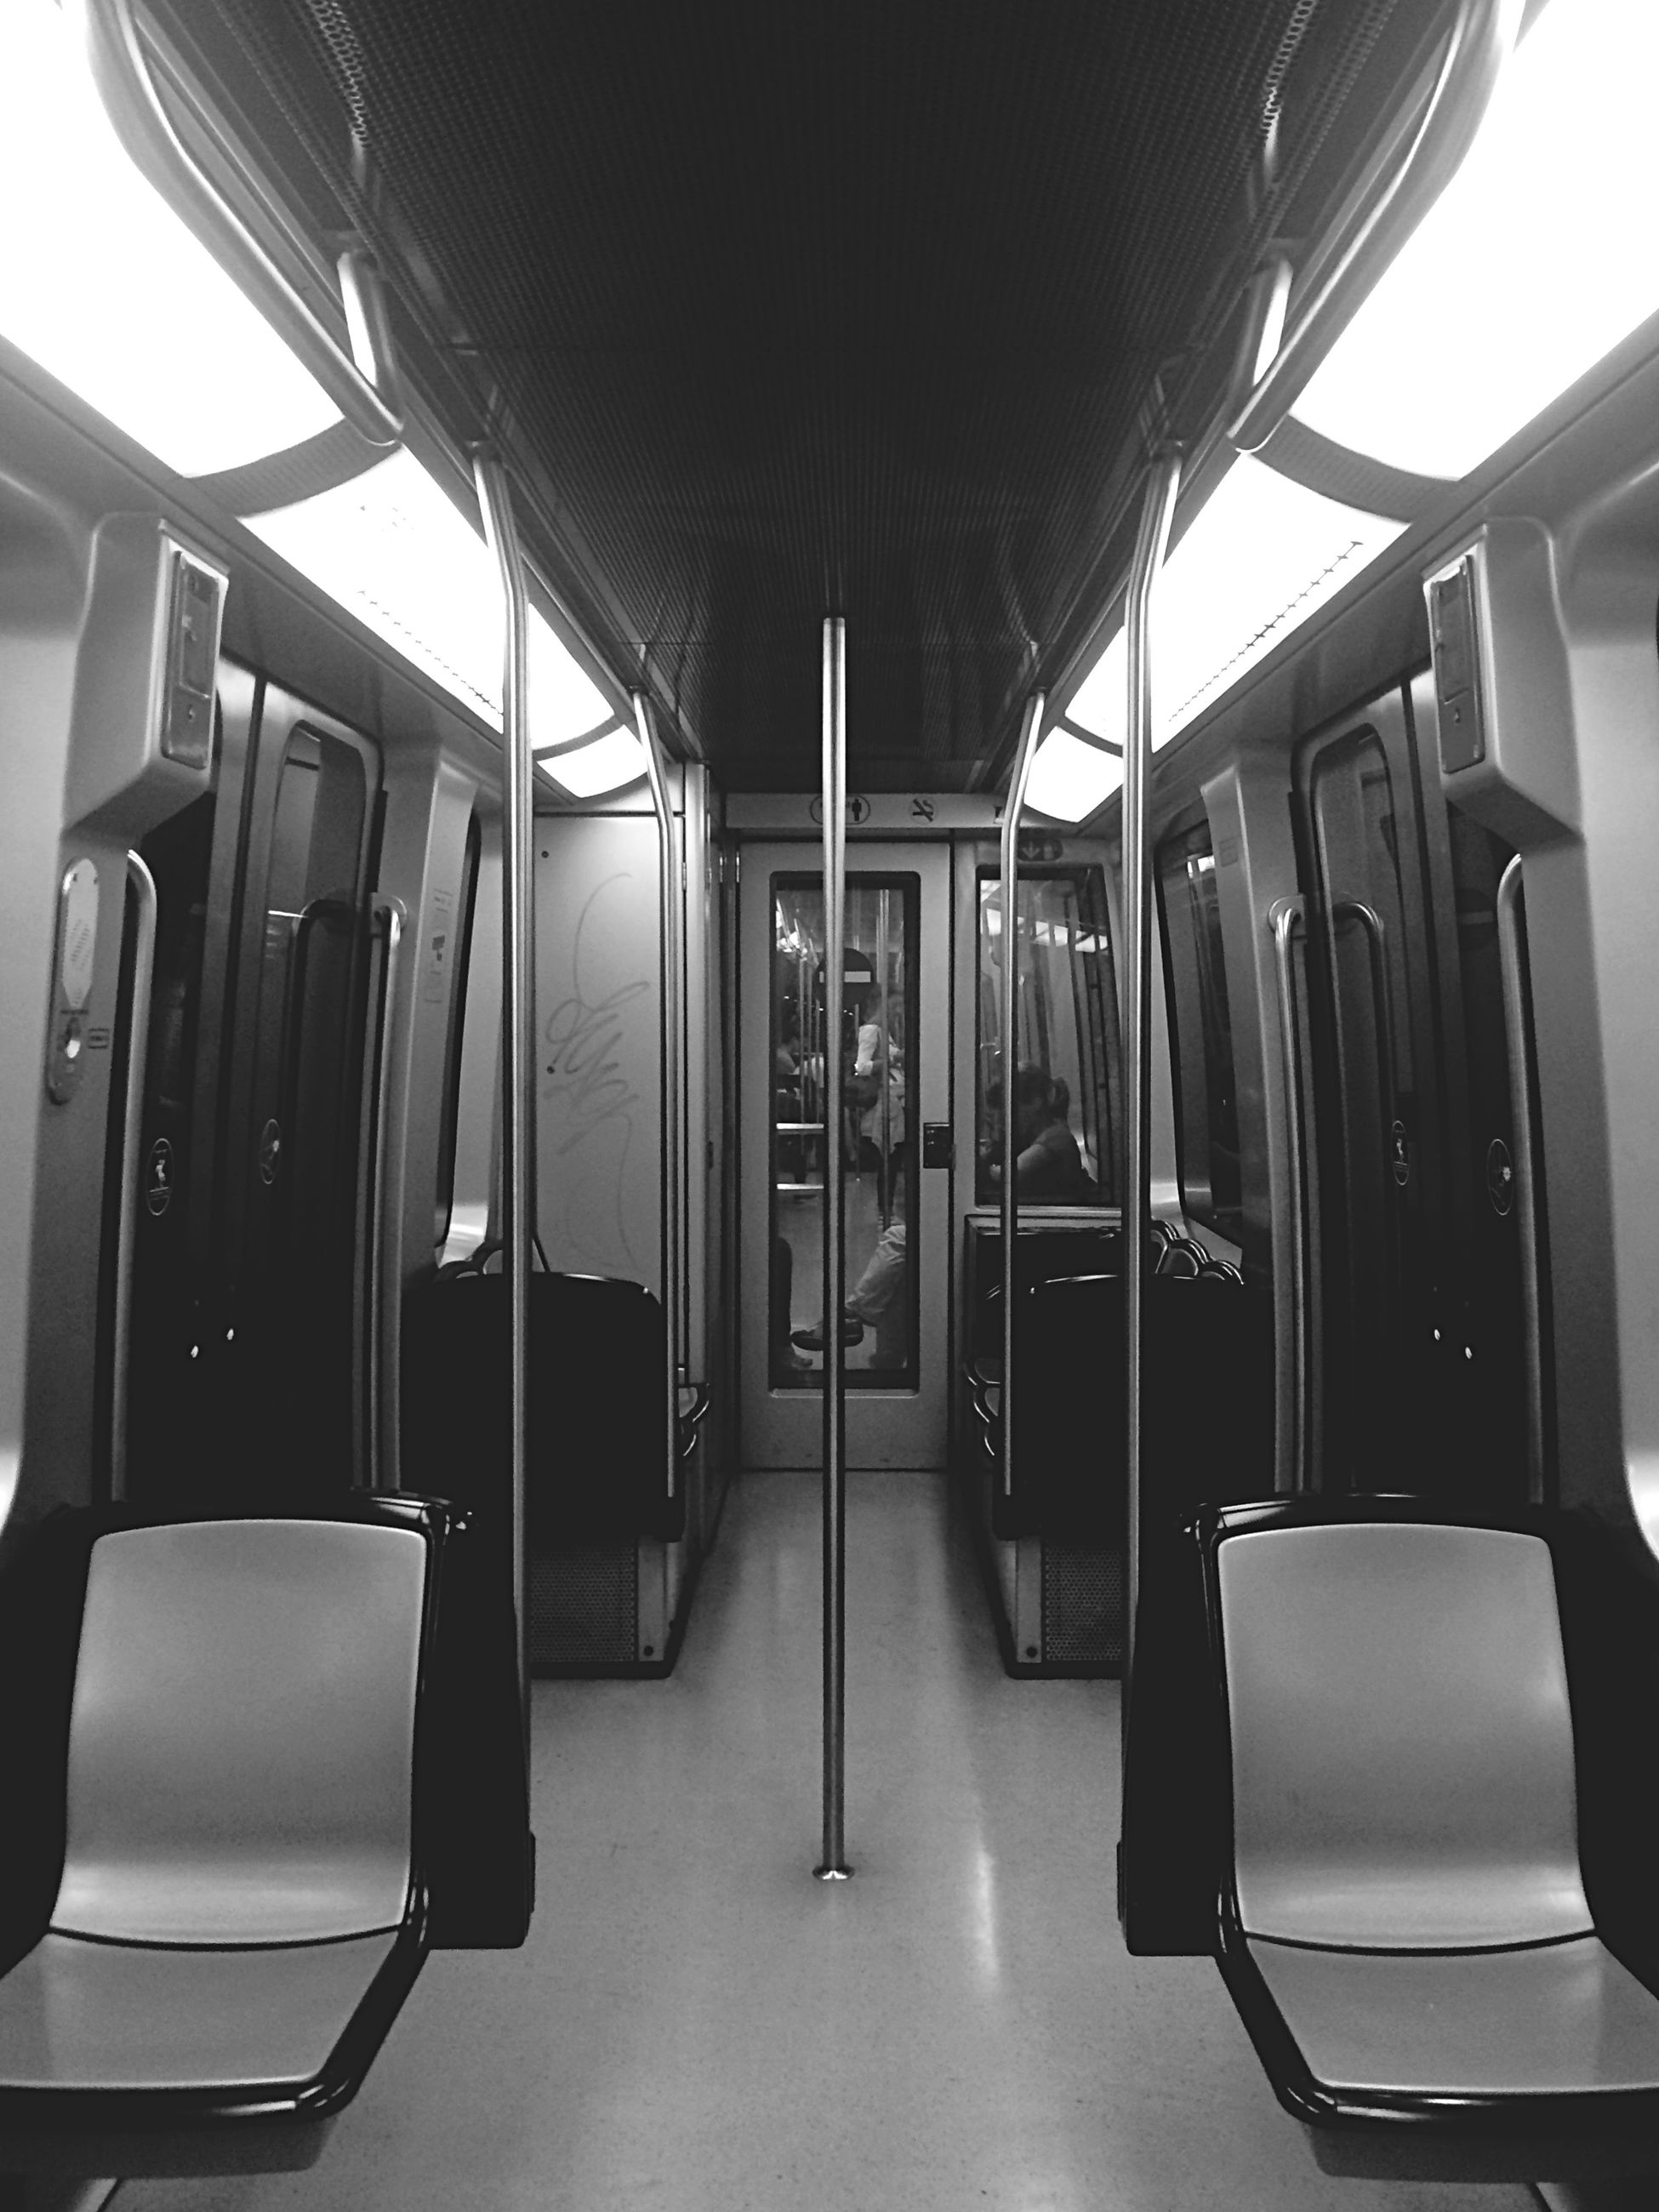 indoors, empty, absence, vehicle seat, transportation, chair, public transportation, interior, seat, vehicle interior, window, mode of transport, travel, in a row, train - vehicle, modern, ceiling, public transport, no people, passenger train